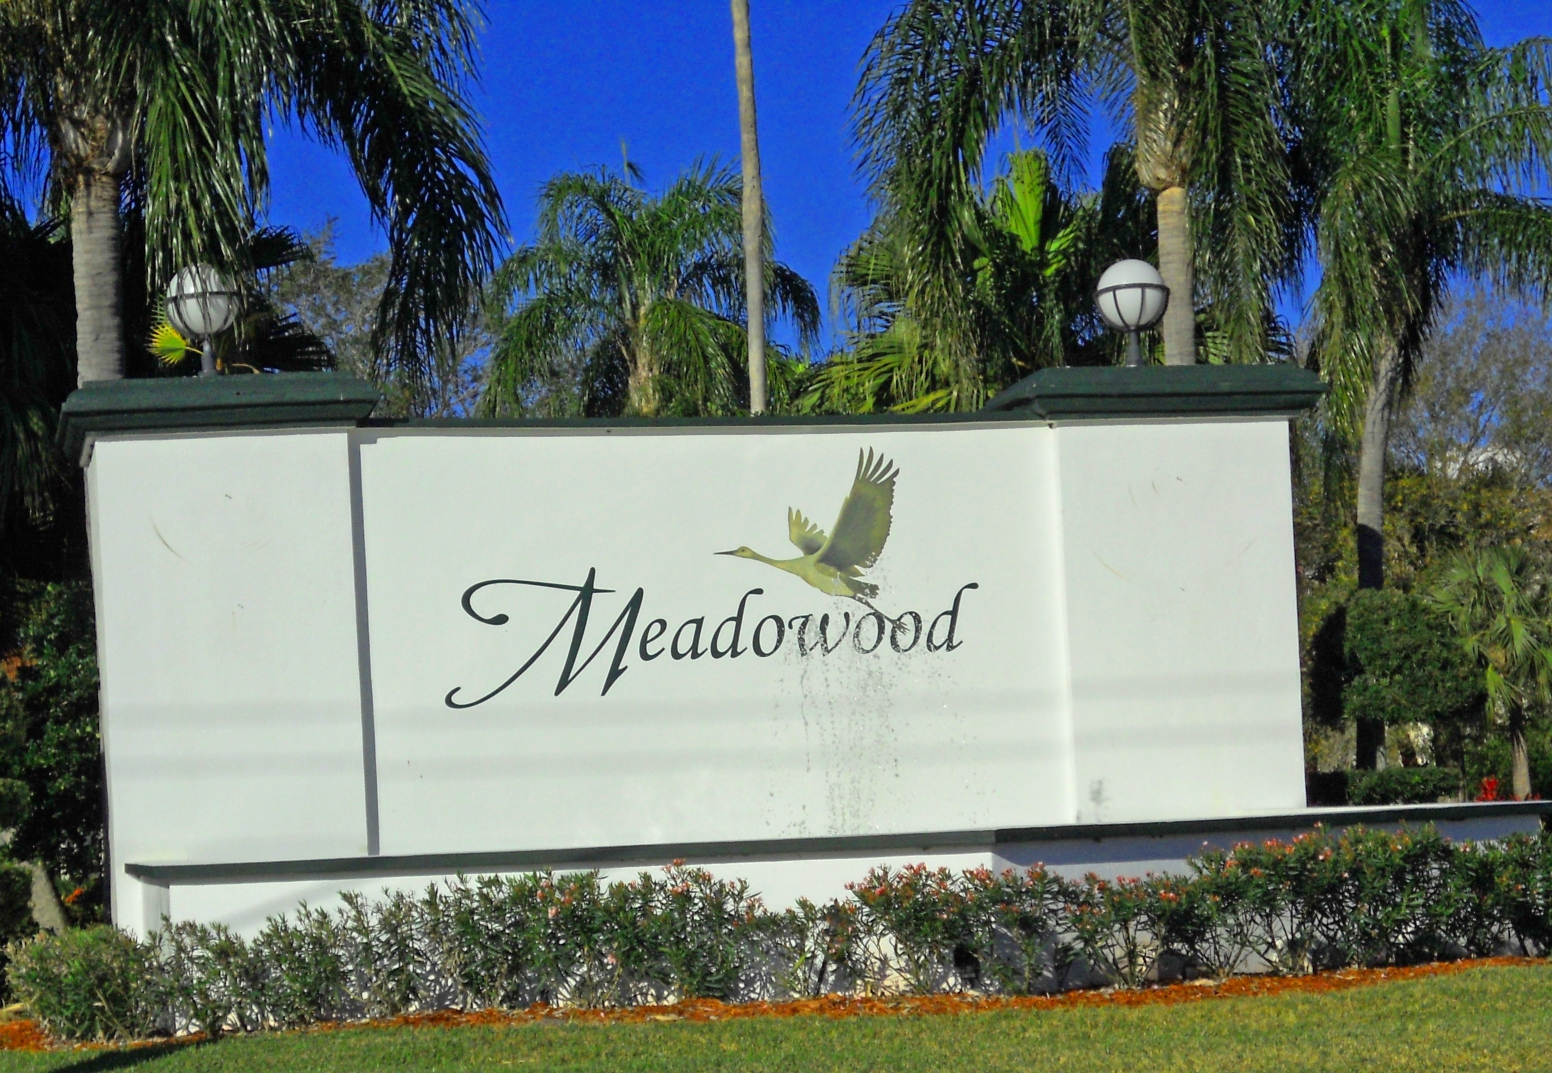 Meadowood Entry.jpg